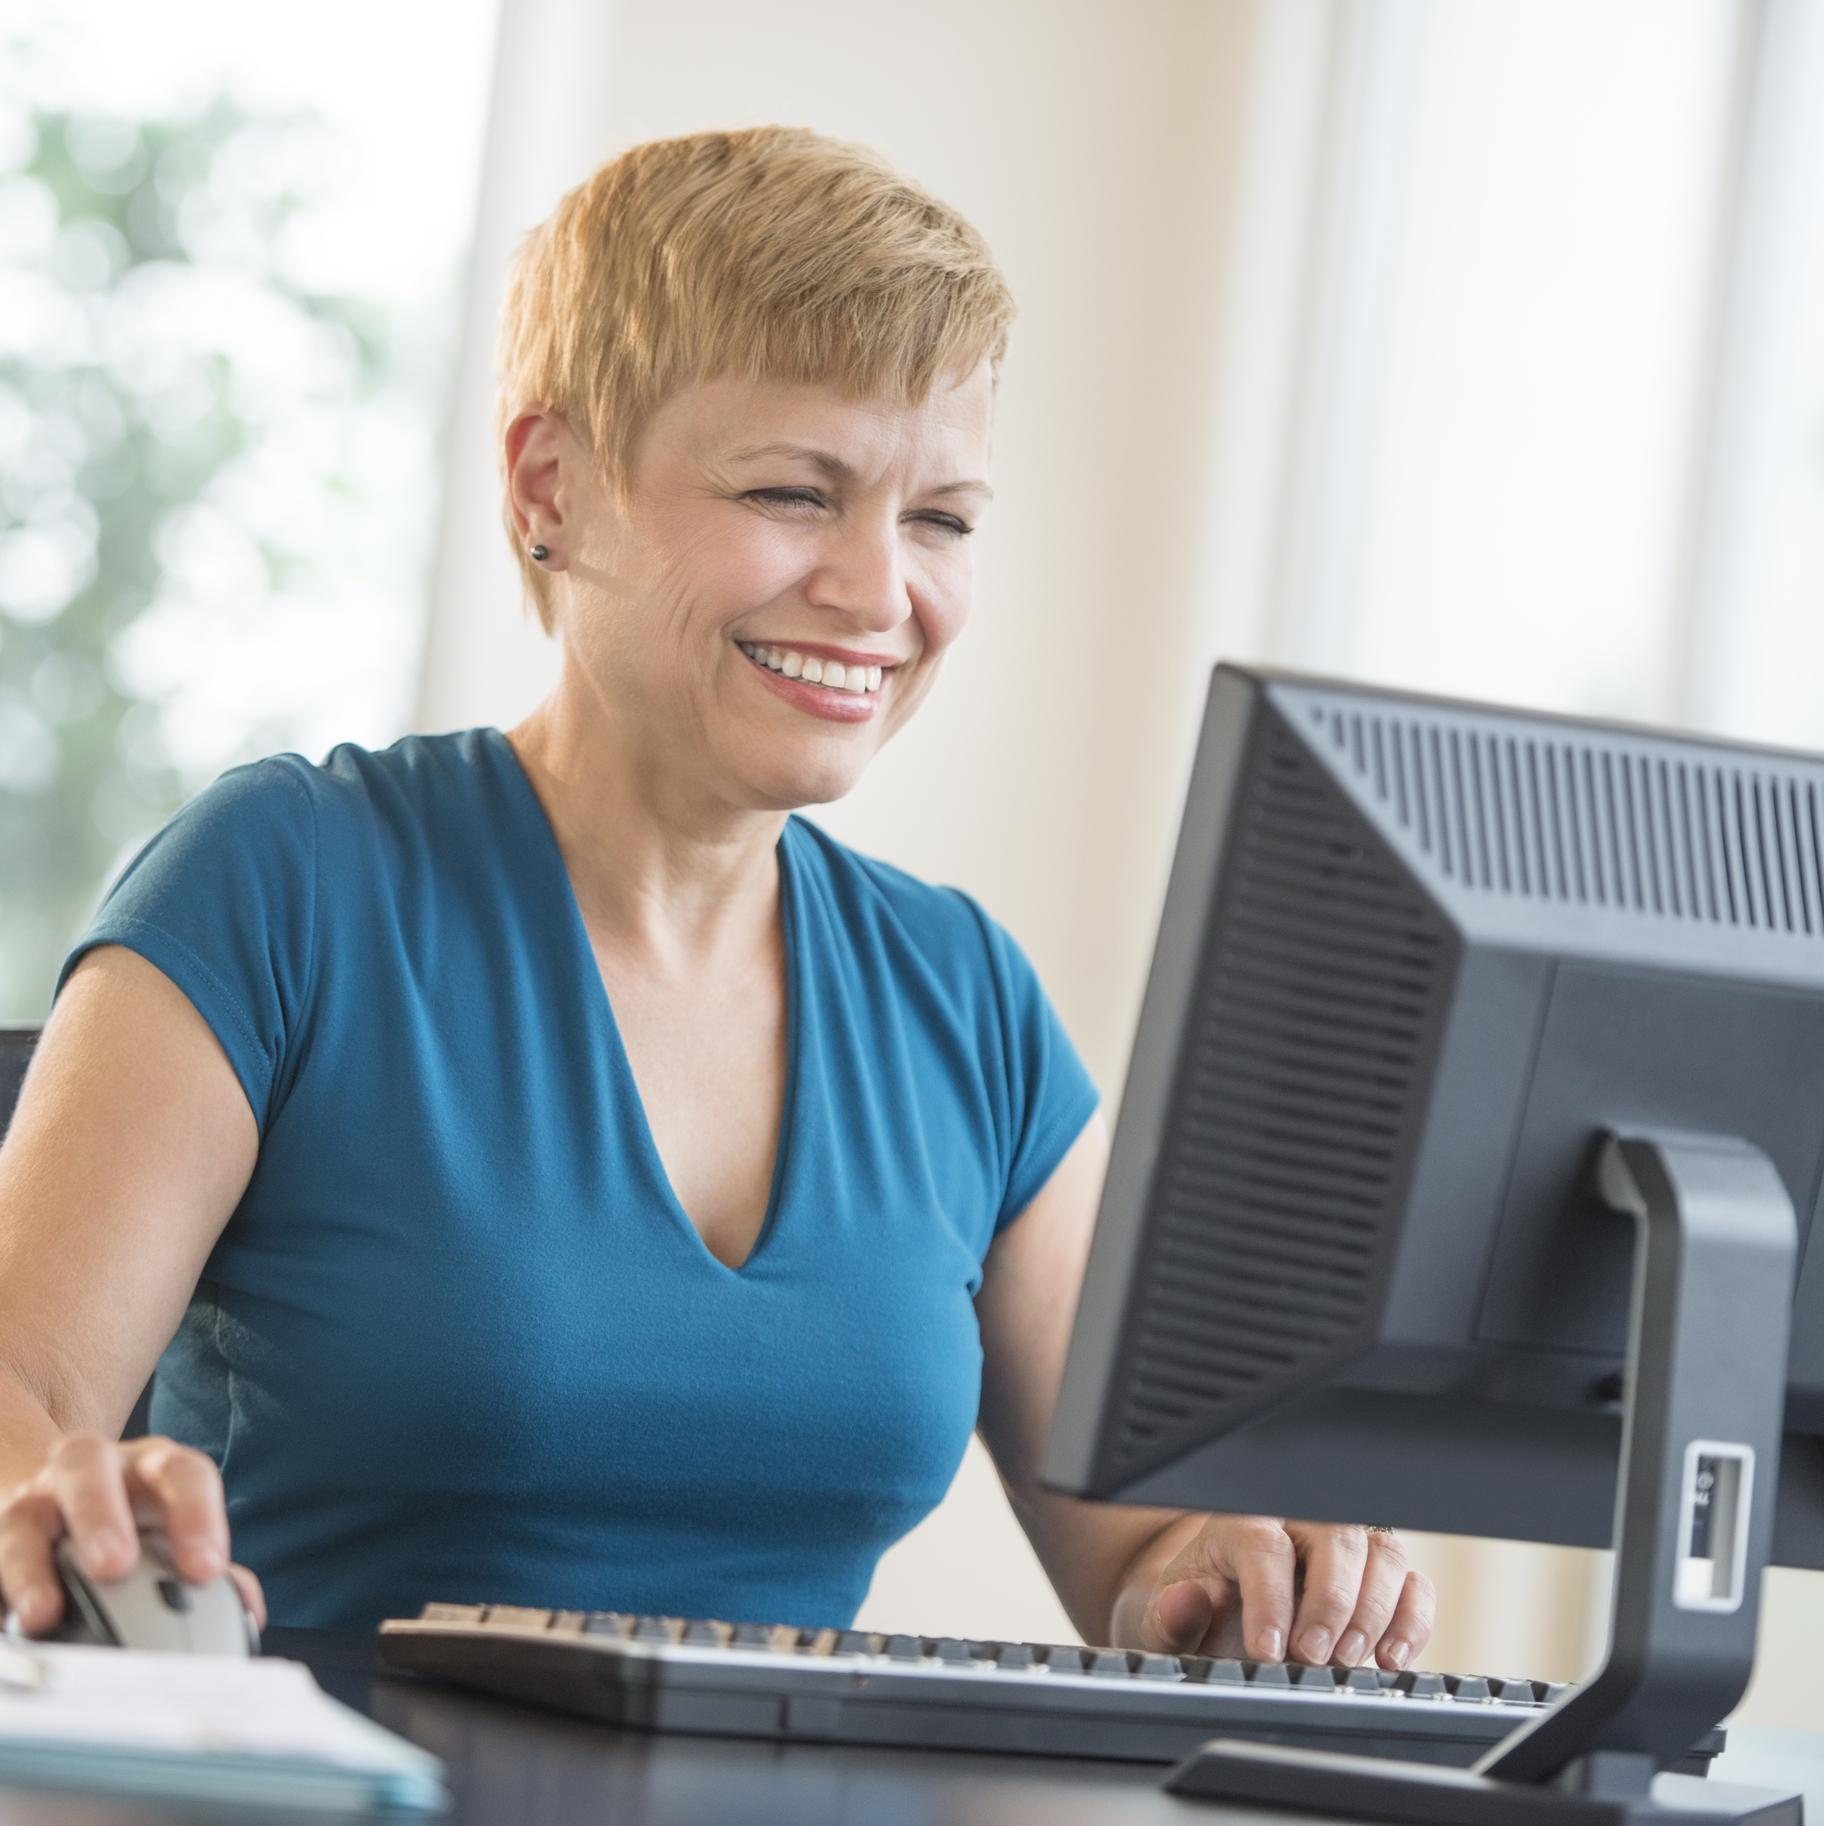 A smiling woman in blue uses a computer.